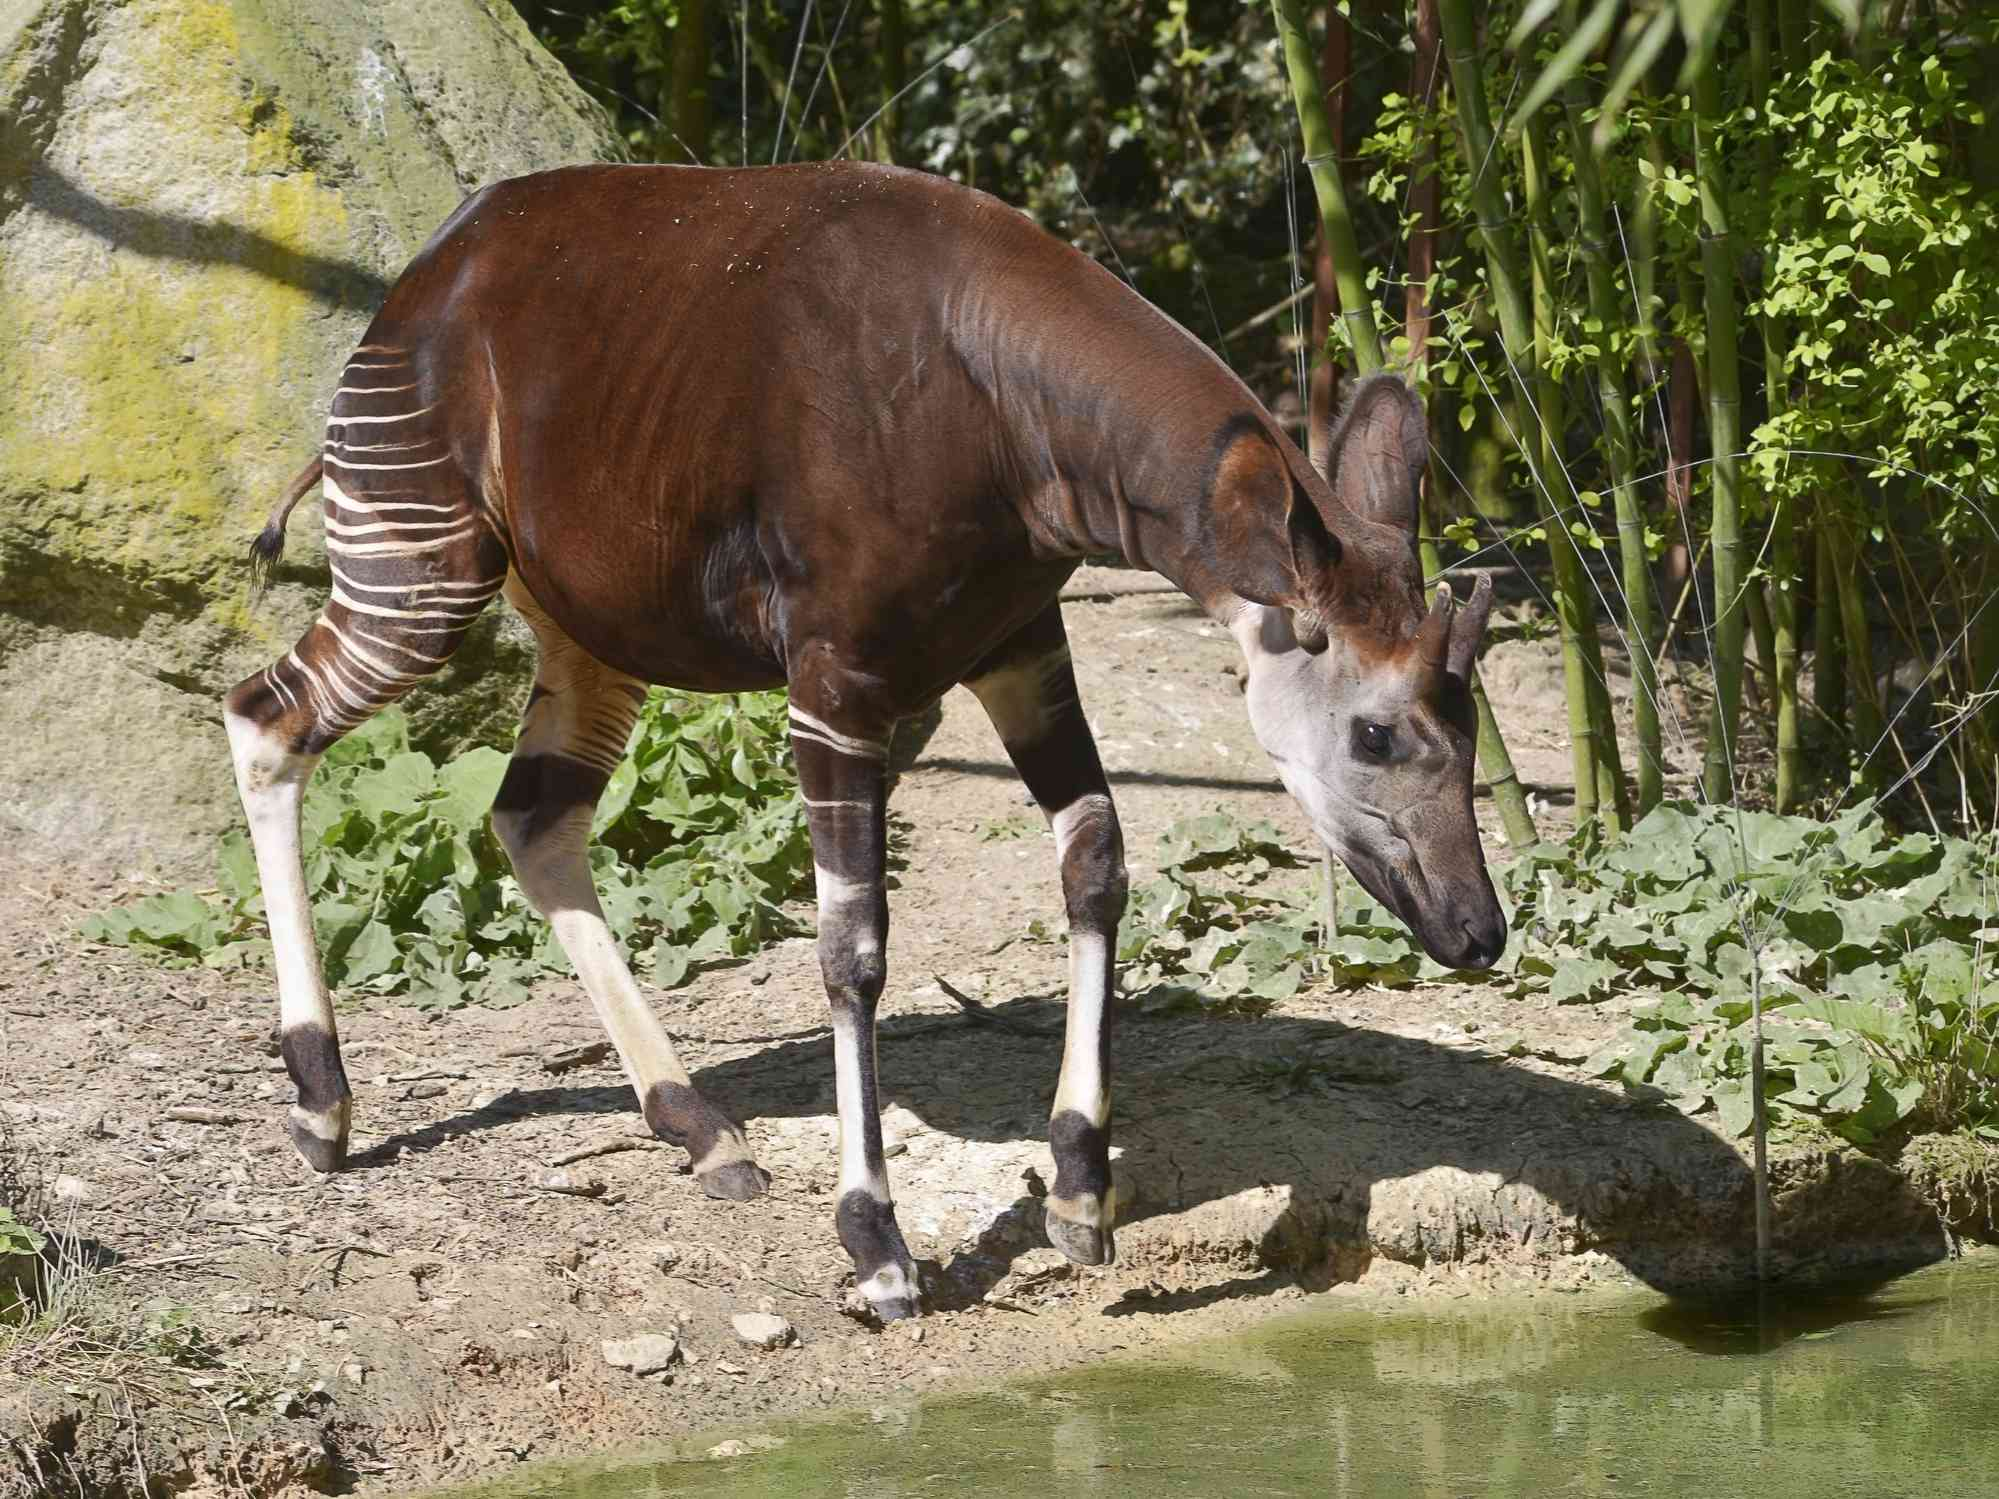 profile of brown okapi with striped legs bending down for a drink